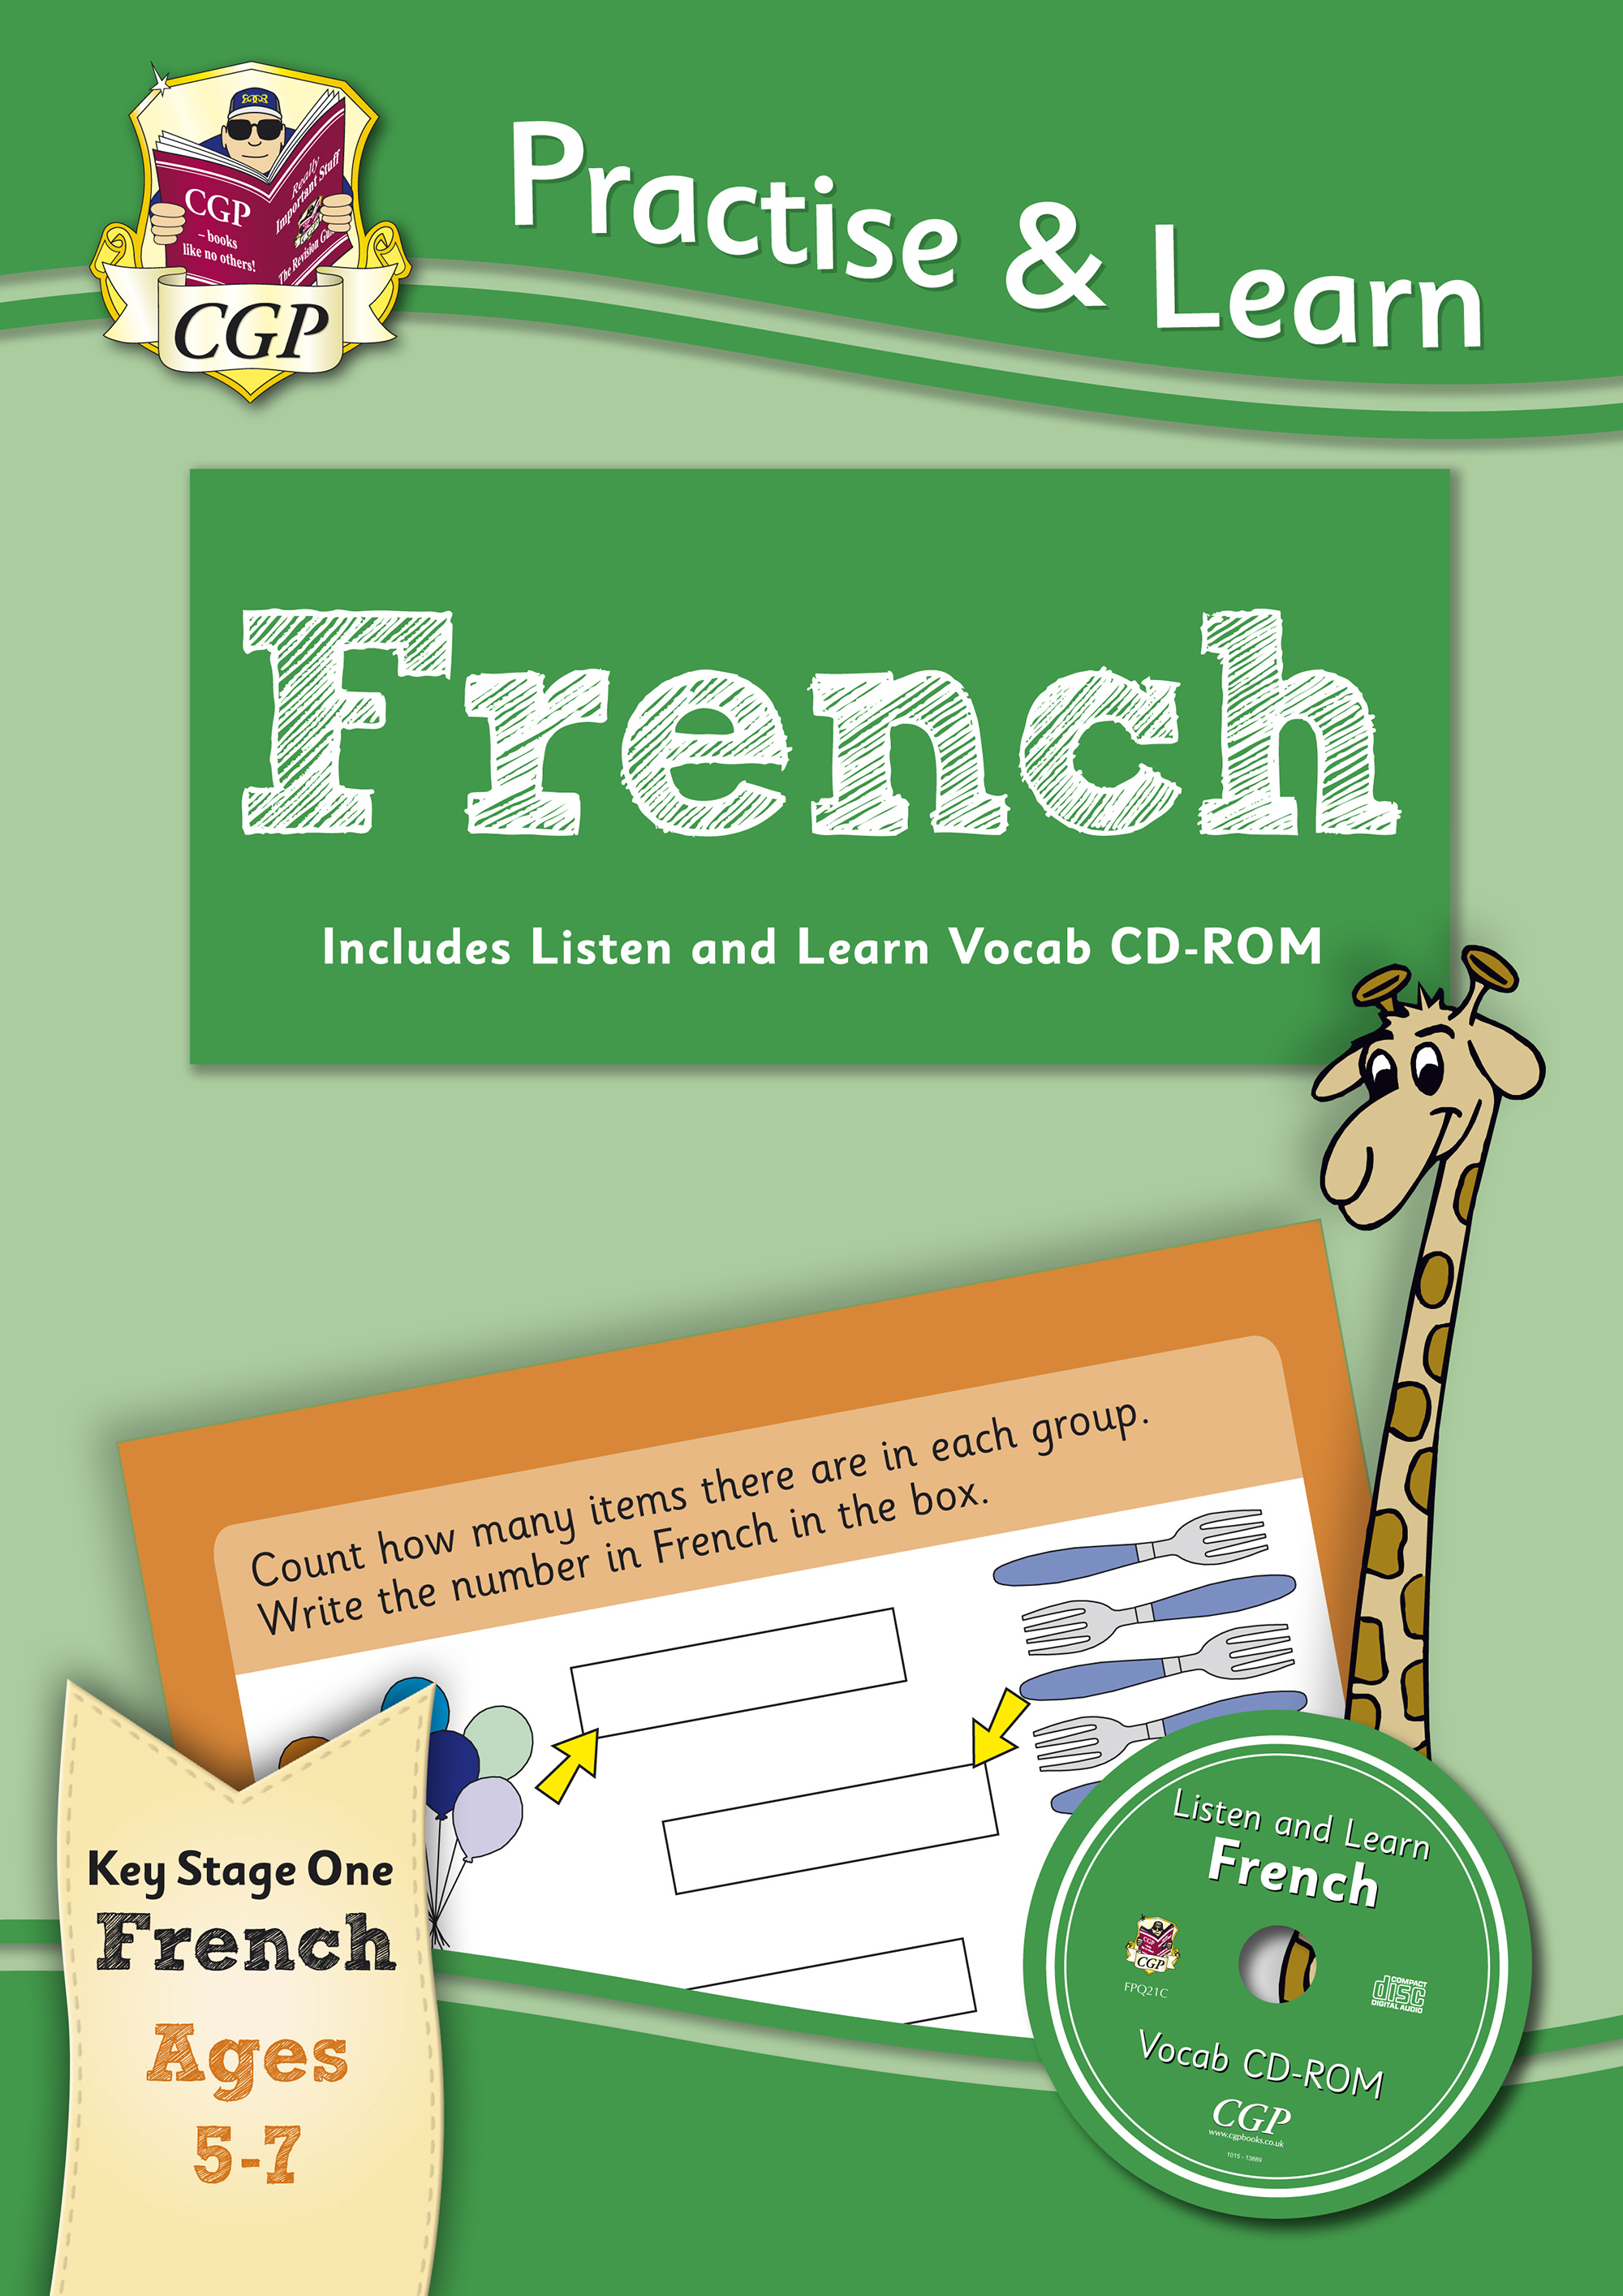 FPQ12 - New Curriculum Practise & Learn: French for Ages 5-7 - with vocab CD-ROM